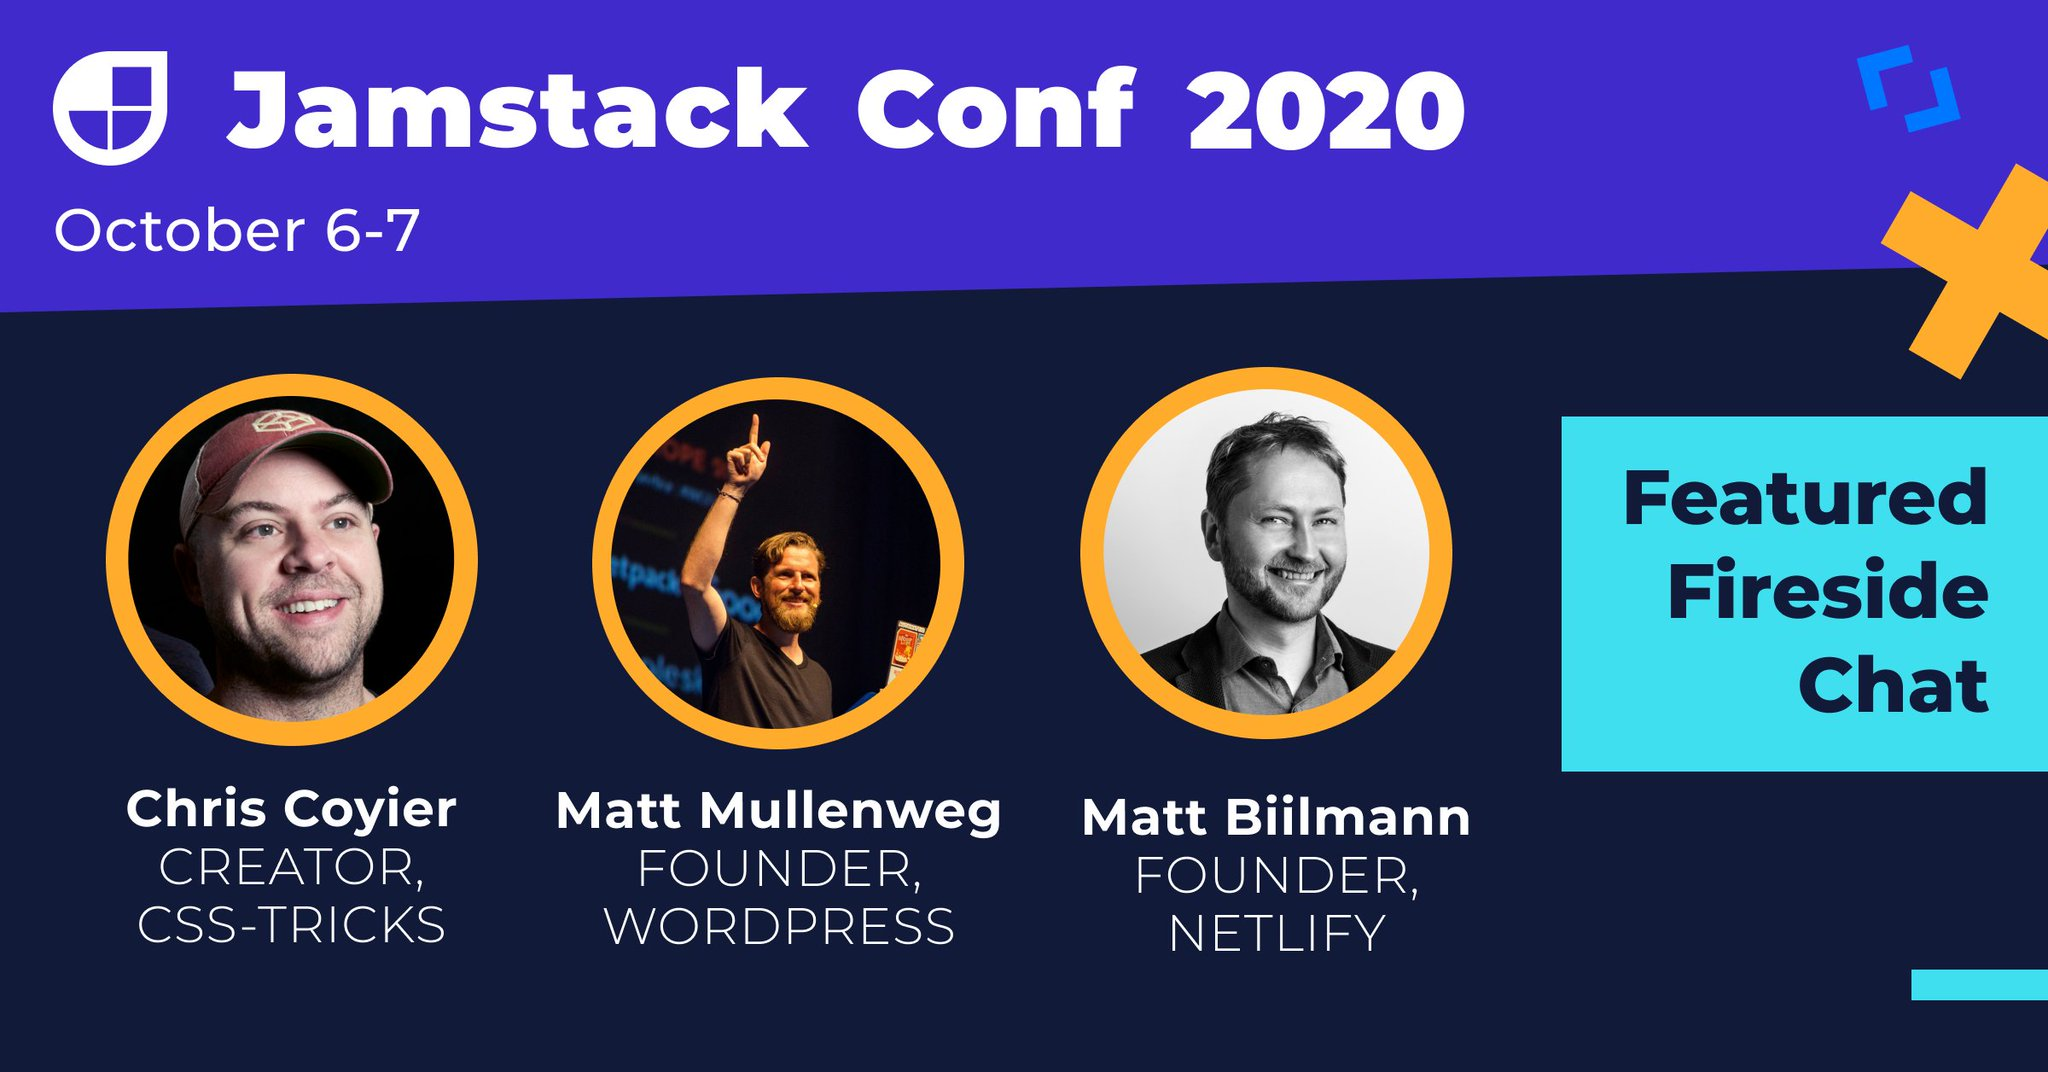 , Virtual Jamstack Conf to Feature Fireside Chat with Matt Mullenweg and Matt Biilmann, October 6